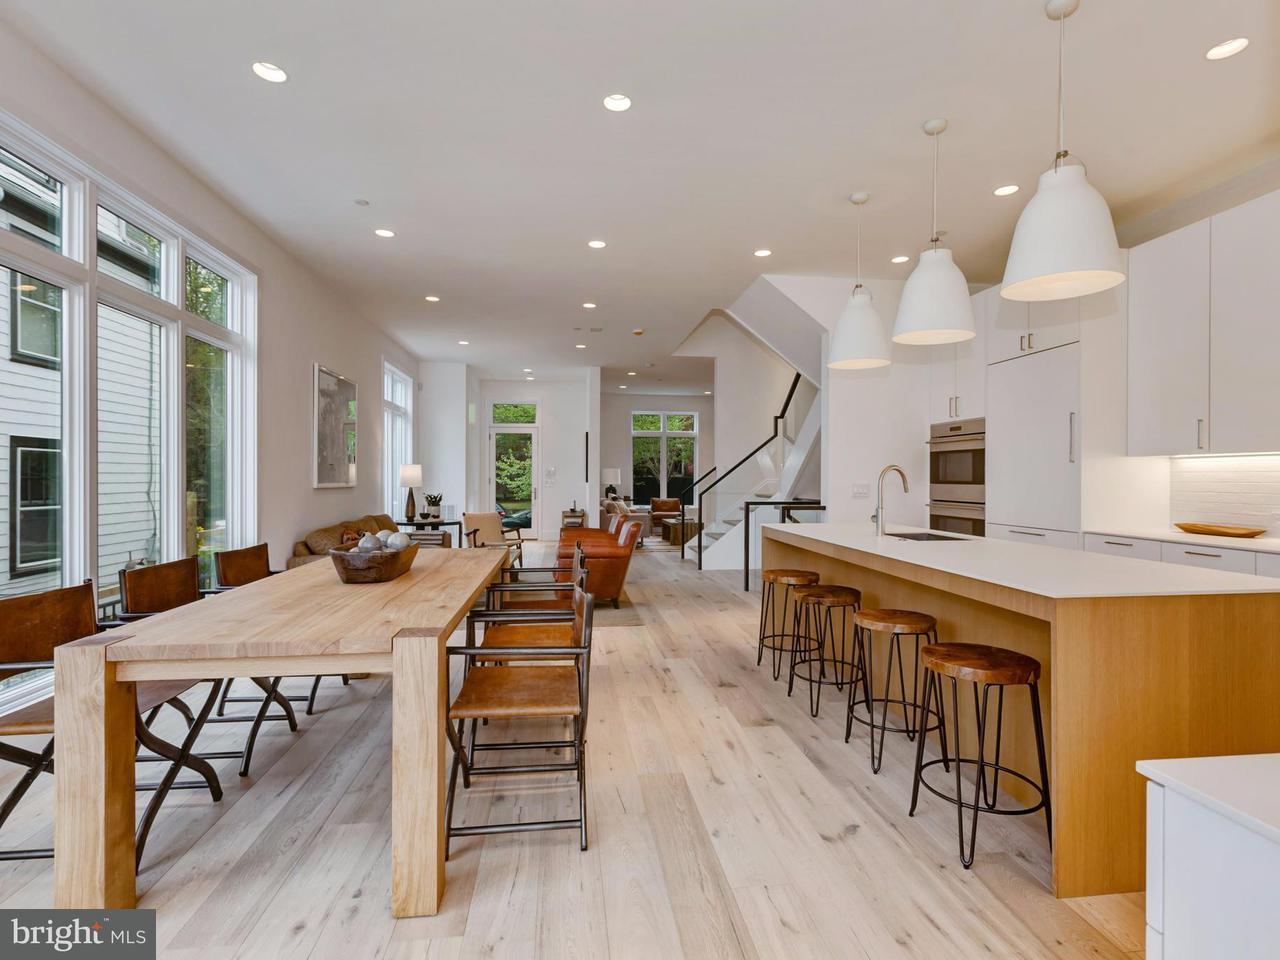 Townhouse for Sale at 3829 LIVINGSTON ST NW 3829 LIVINGSTON ST NW Washington, District Of Columbia 20015 United States